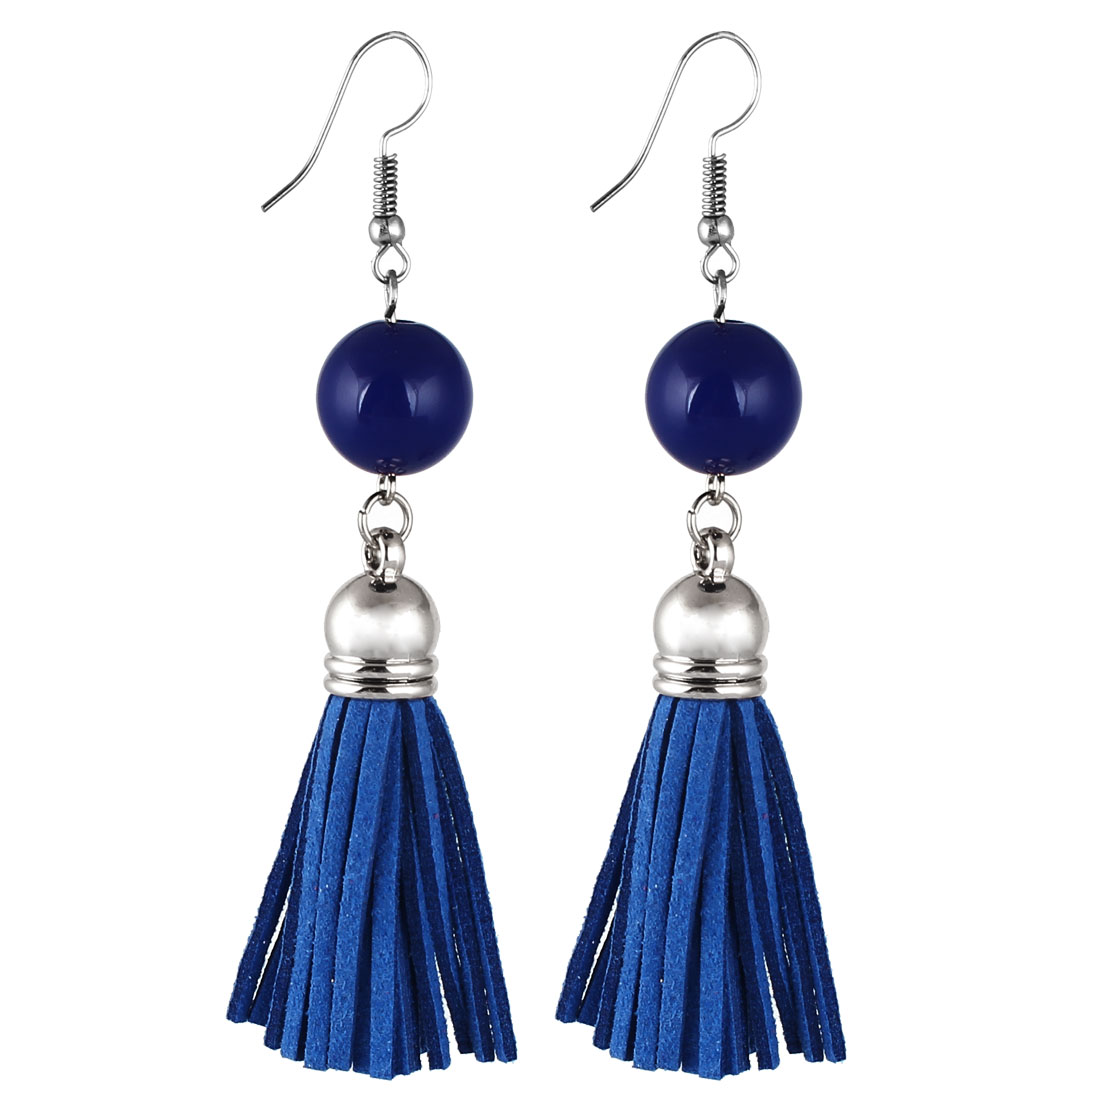 Lady Women Fashion Jewelry Bead Decor Long Tassel Dangle Earrings Pair Blue